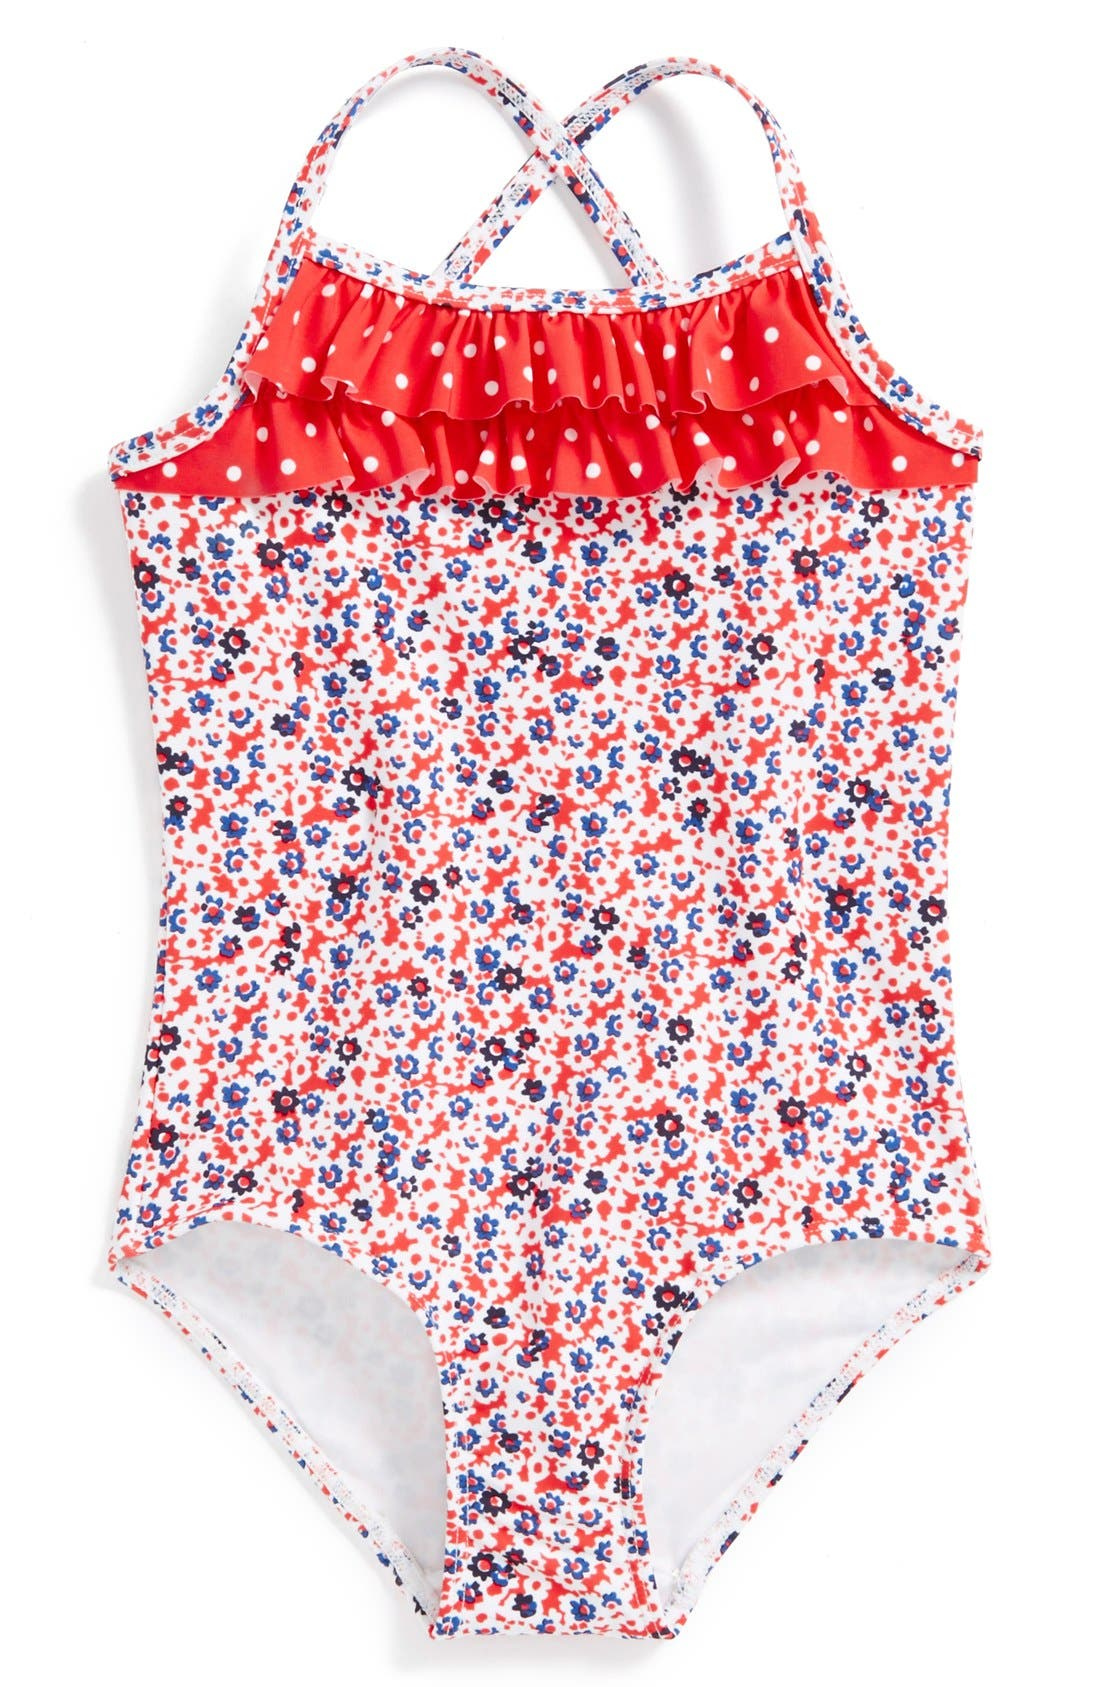 Alternate Image 1 Selected - Tucker + Tate 'Santa Cruz' Ruffle One-Piece Swimsuit (Little Girls & Big Girls)